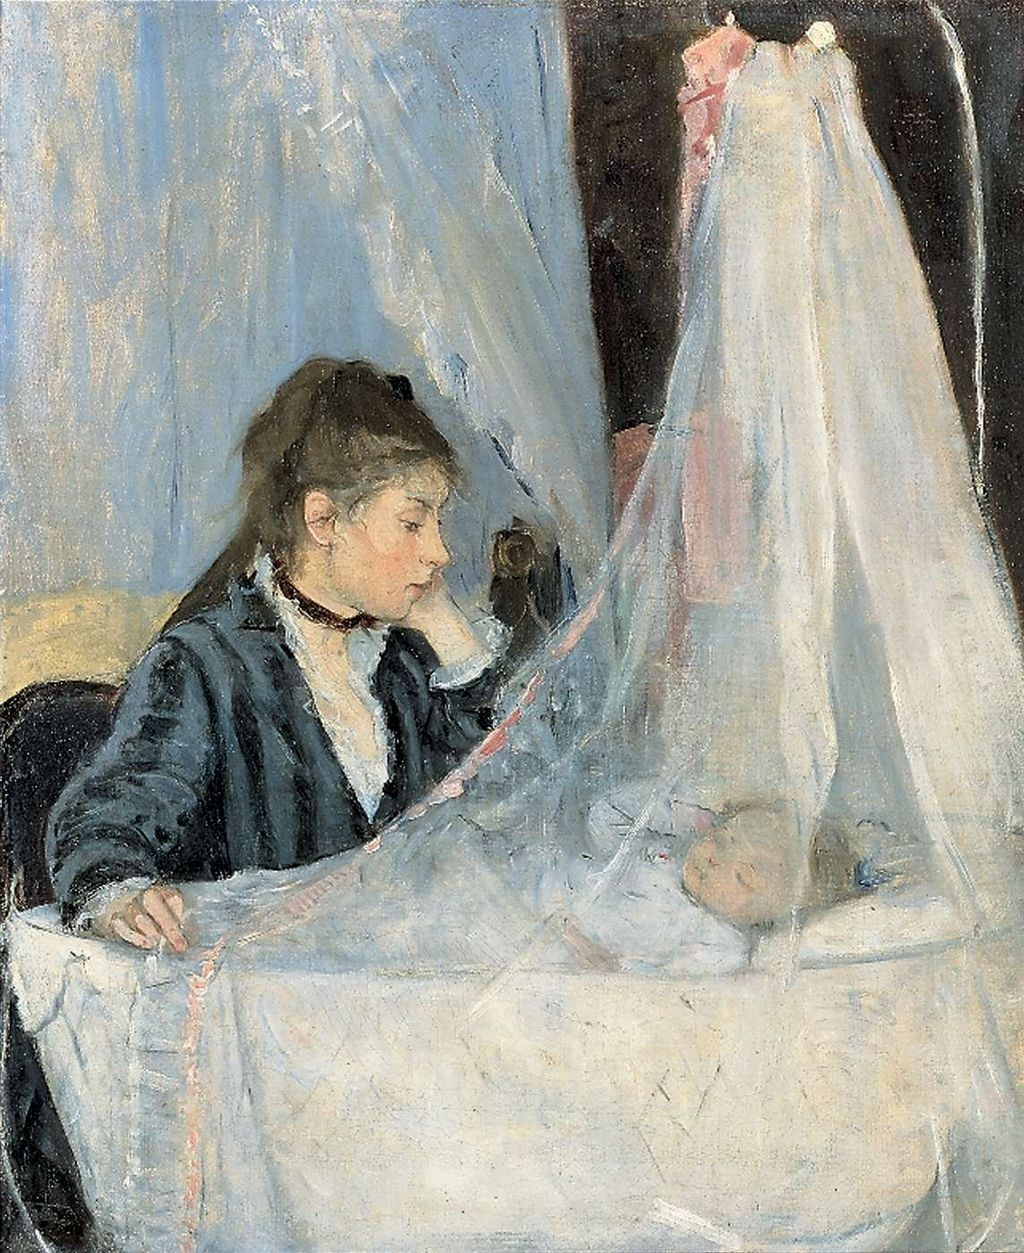 Painting: Le Berceau (The Cradle) by Berthe Morisot